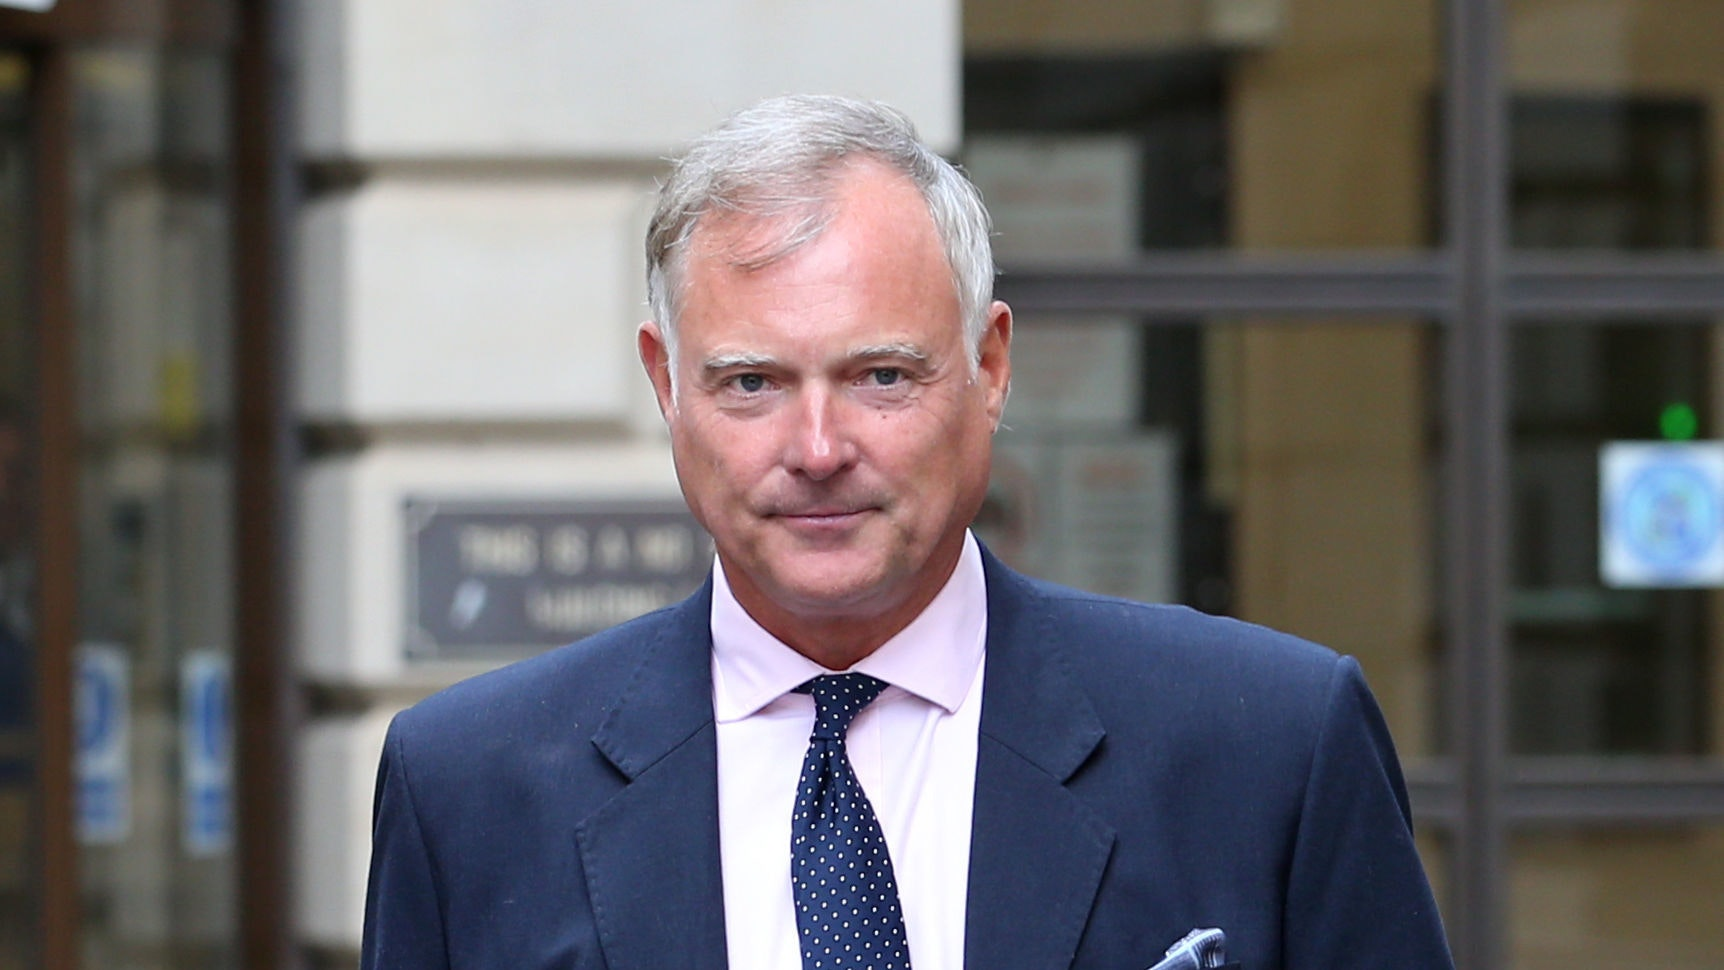 John Leslie charged with sex assault after London nightclub incident